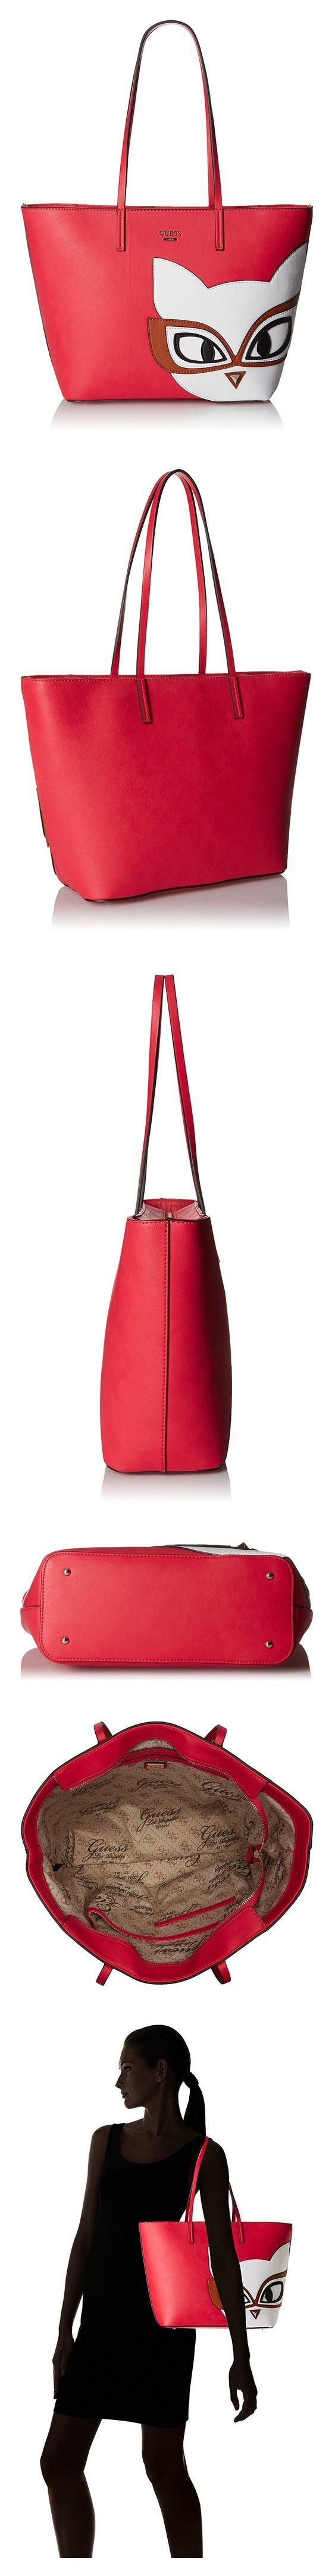 $98 - GUESS Clare (Vc) Tote Red #guess